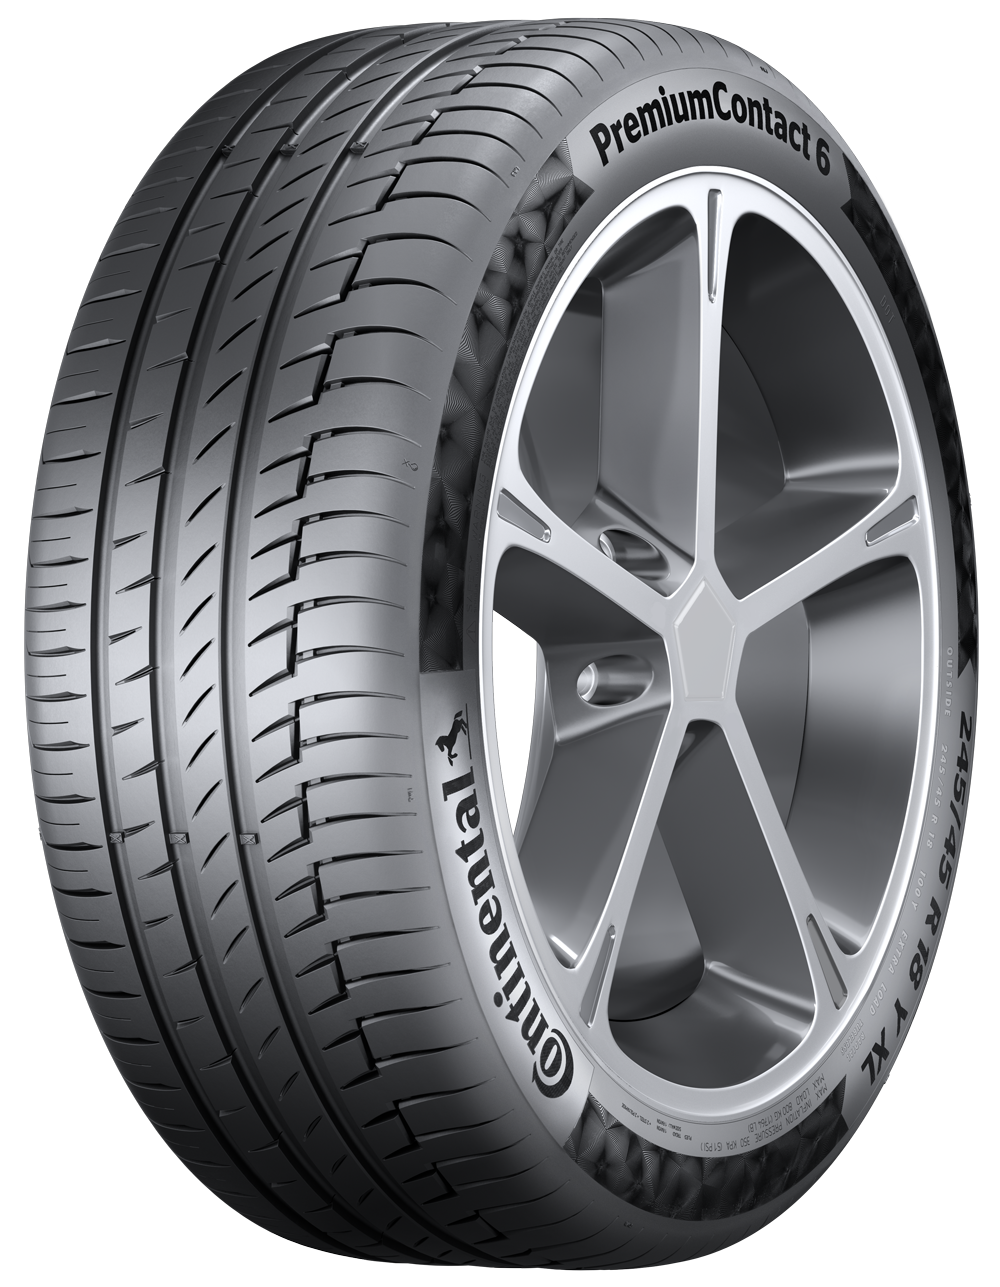 Anvelopa Vara Continental Premium Contact 6 205/45R16 83W